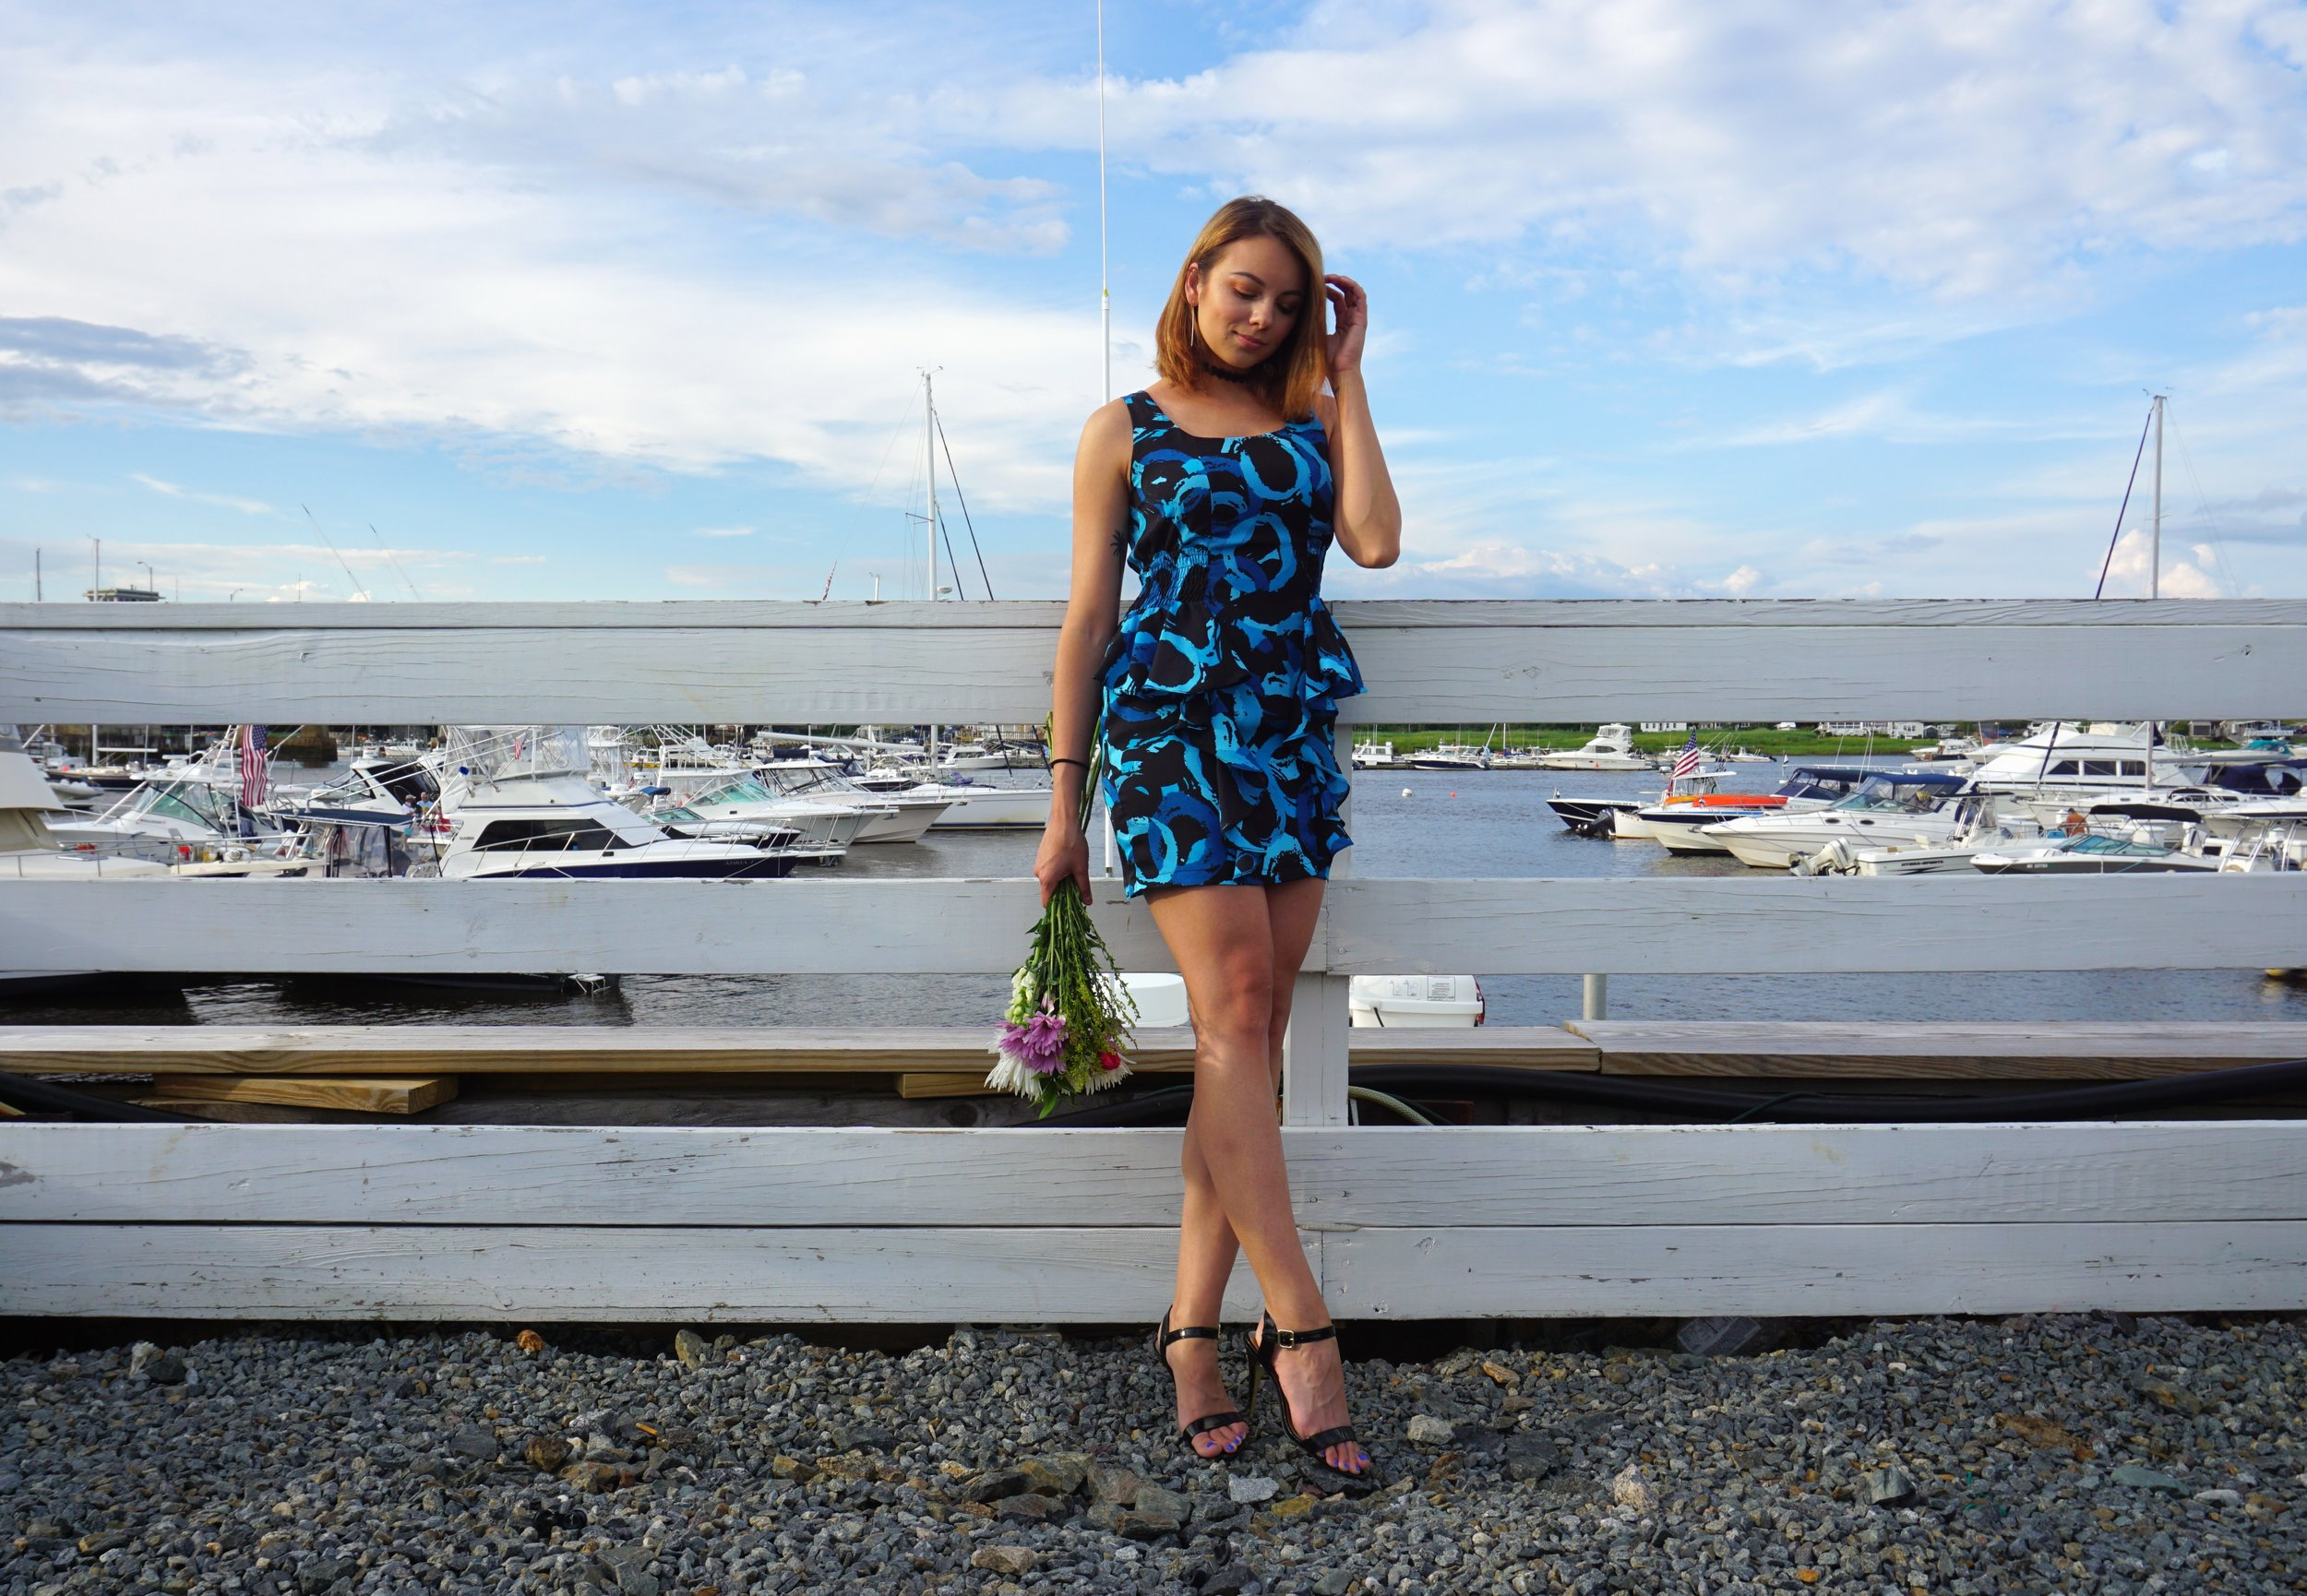 Girl standing on the pier with flowers, wearing a short blue summer dress, high heeled sandals, and a black choker.